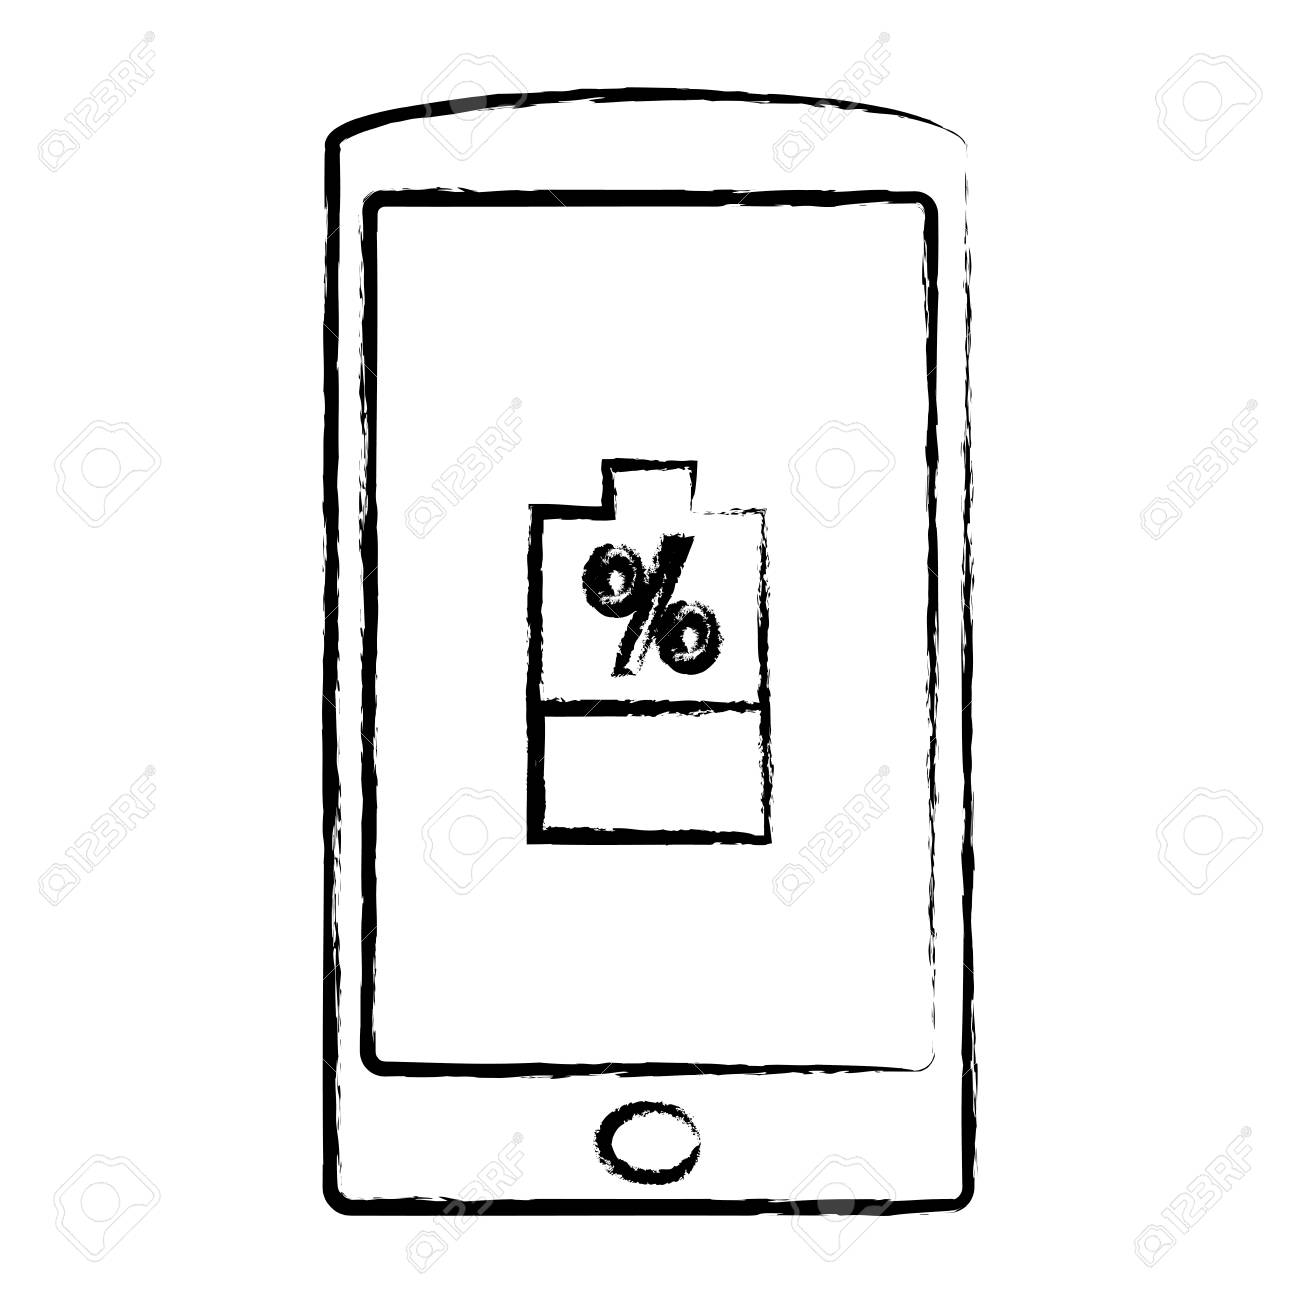 A Sketch Of Smartphone Device With Battery Percent Over White Royalty Free Cliparts Vectors And Stock Illustration Image 95003396